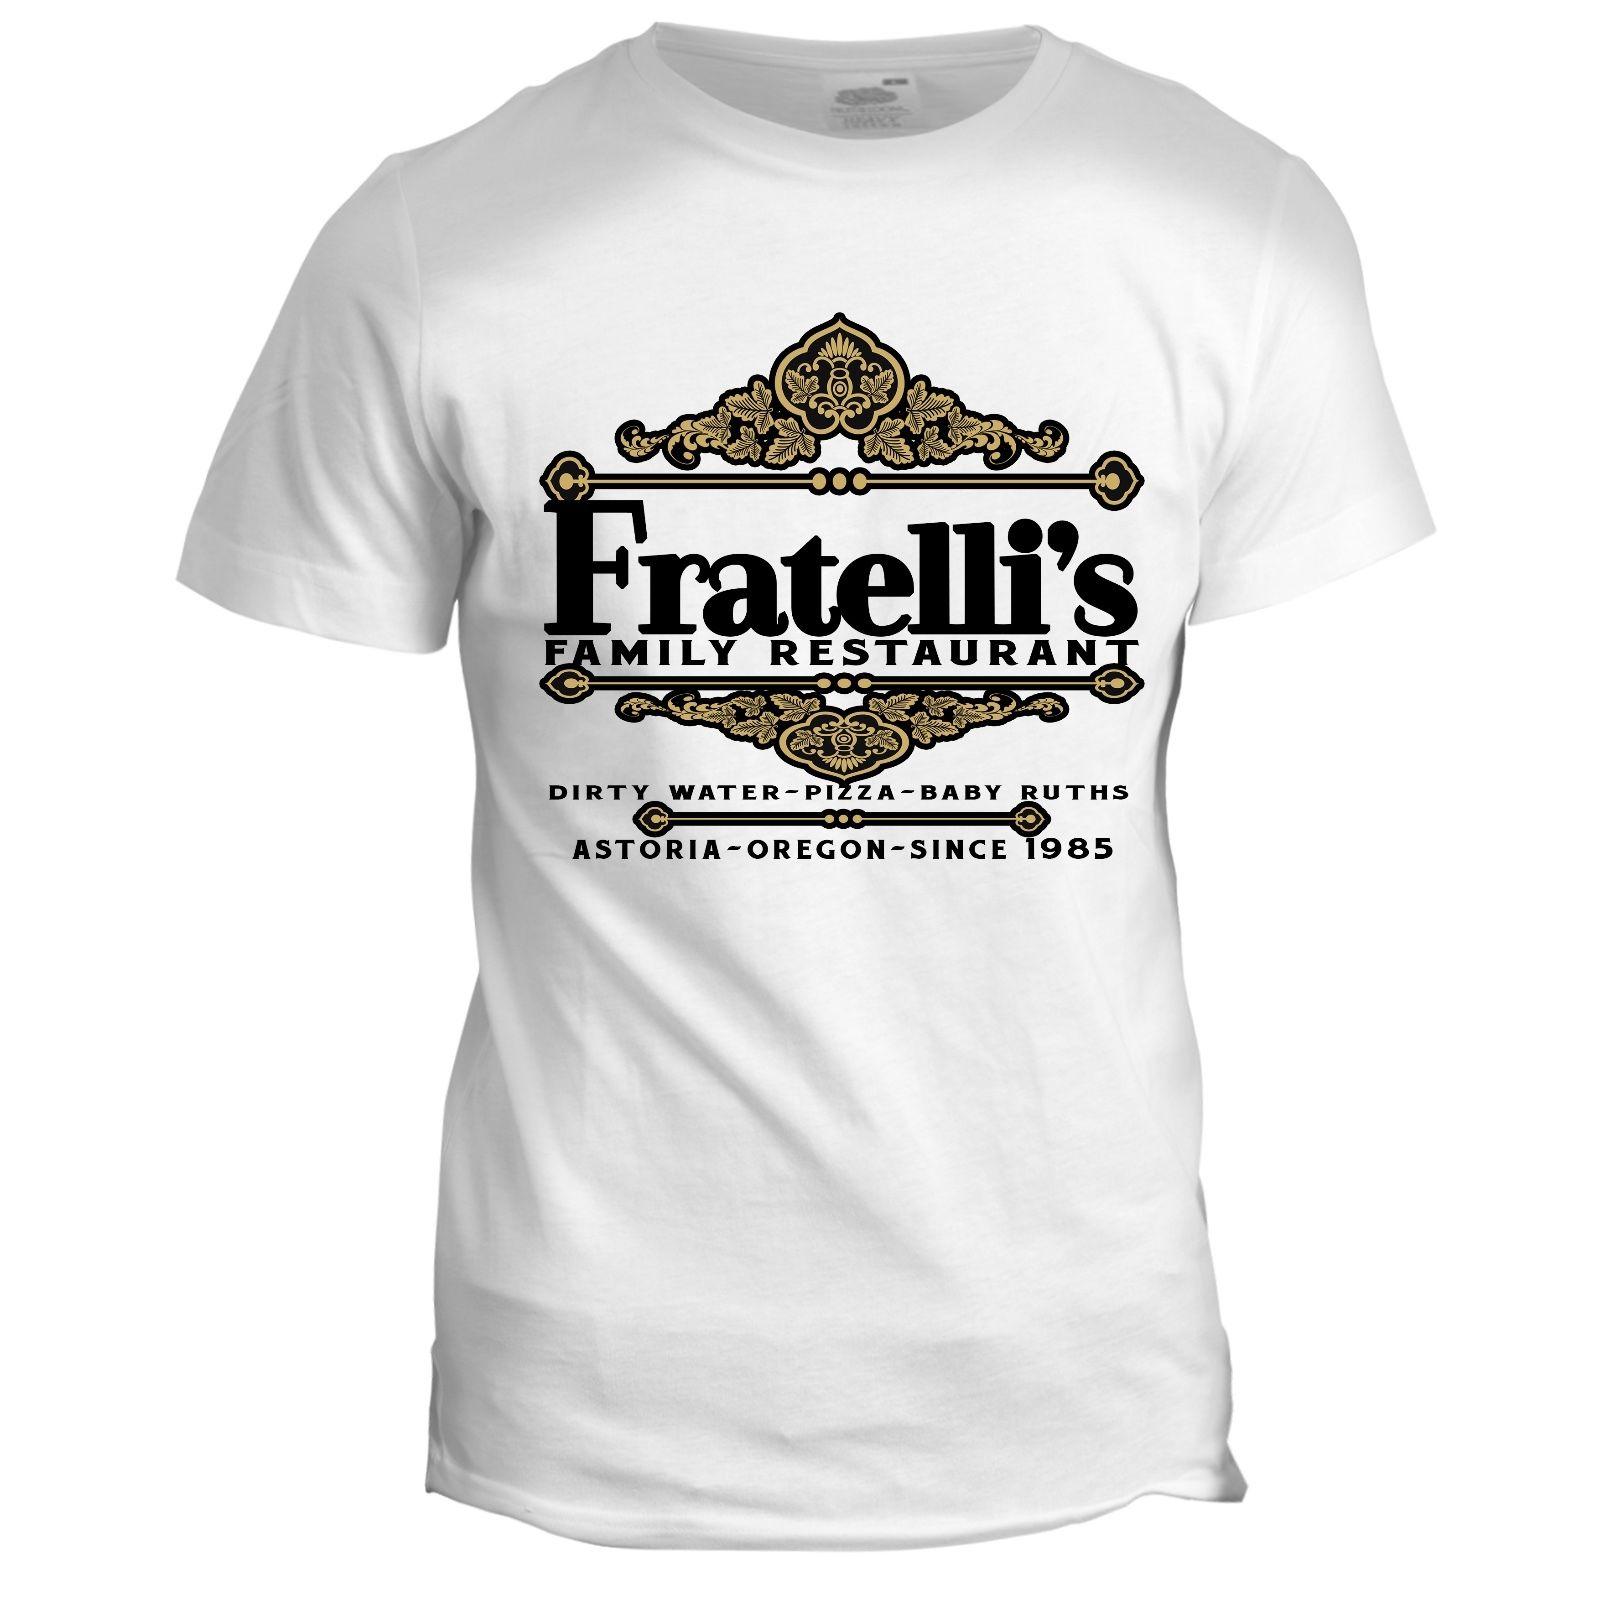 Fratelli's Restaurant Inspired The Goonies 80s Retro Italian Movie Film T Shirt Printed T-Shirt Boys Top Tee Cotton Plus Size image